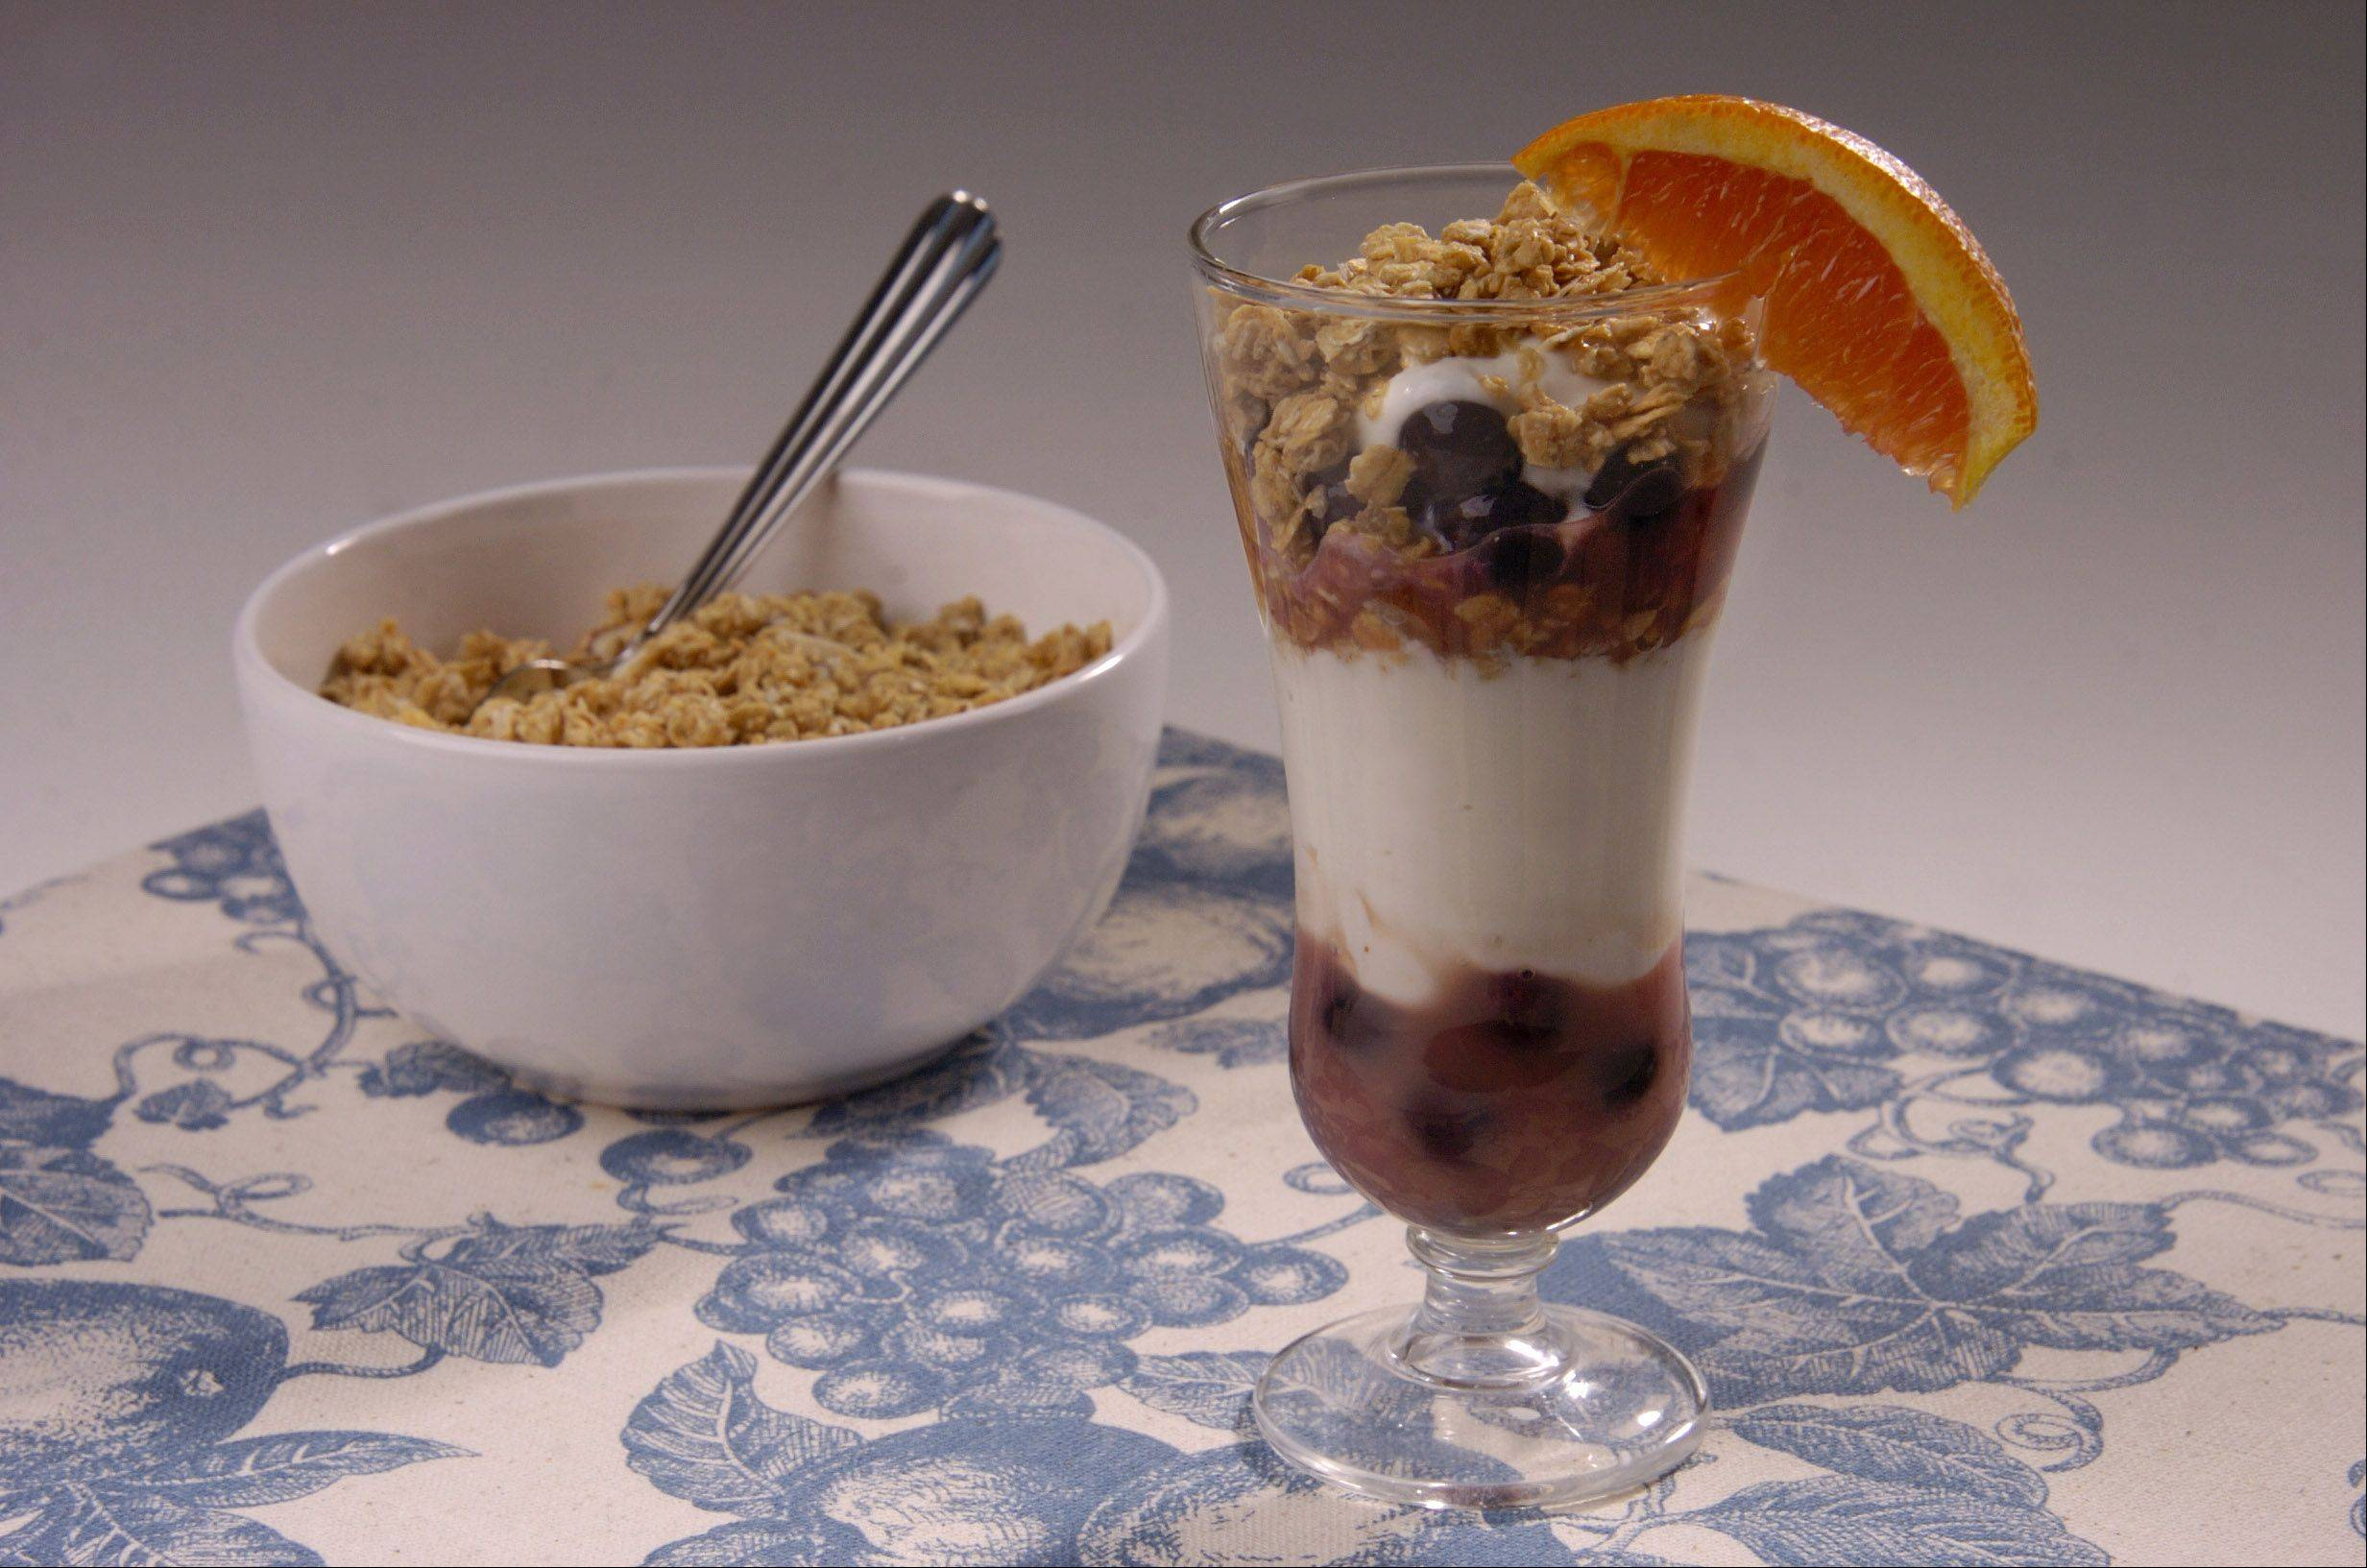 Orange-infused blueberry sauce and home-baked granola make this parfait a delicious and healthy dessert option.